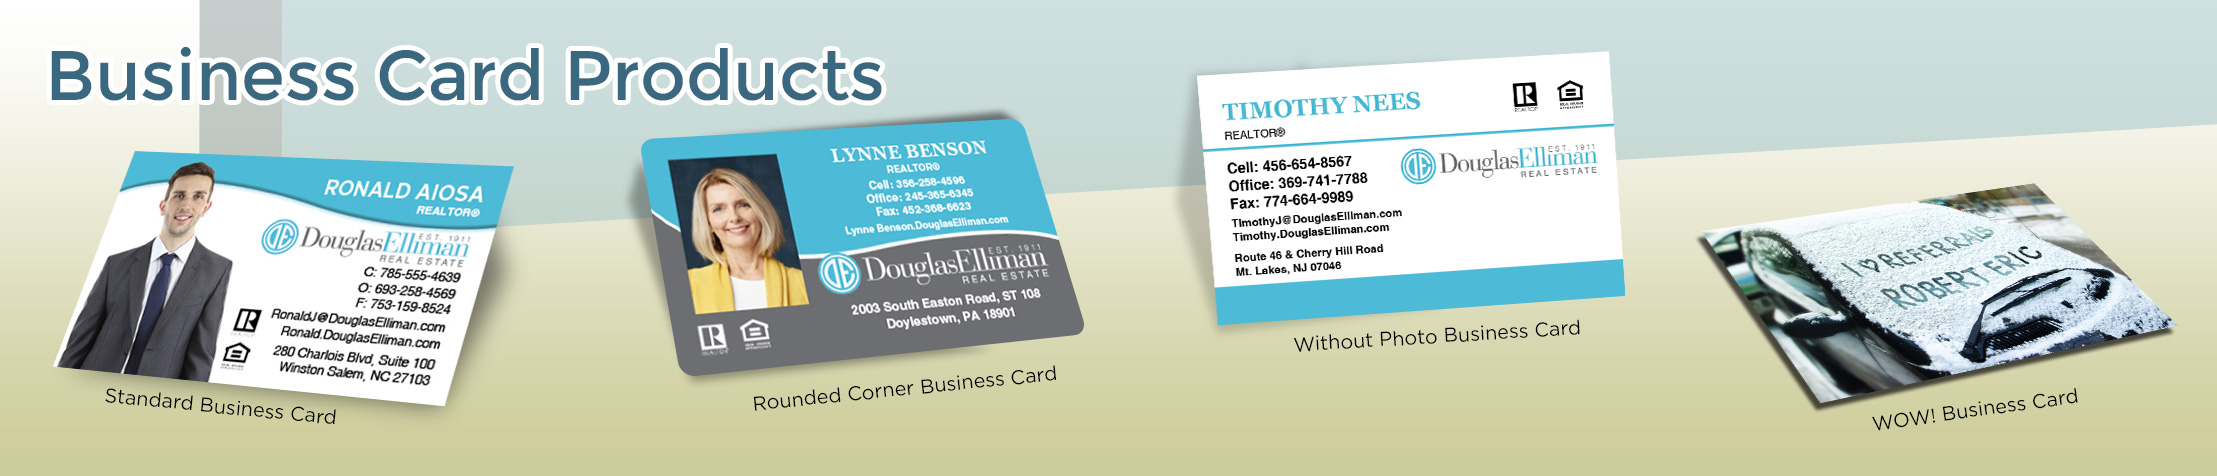 Douglas Elliman Real Estate Business Card Products - Douglas Elliman  - Unique, Custom Business Cards Printed on Quality Stock with Creative Designs for Realtors | BestPrintBuy.com